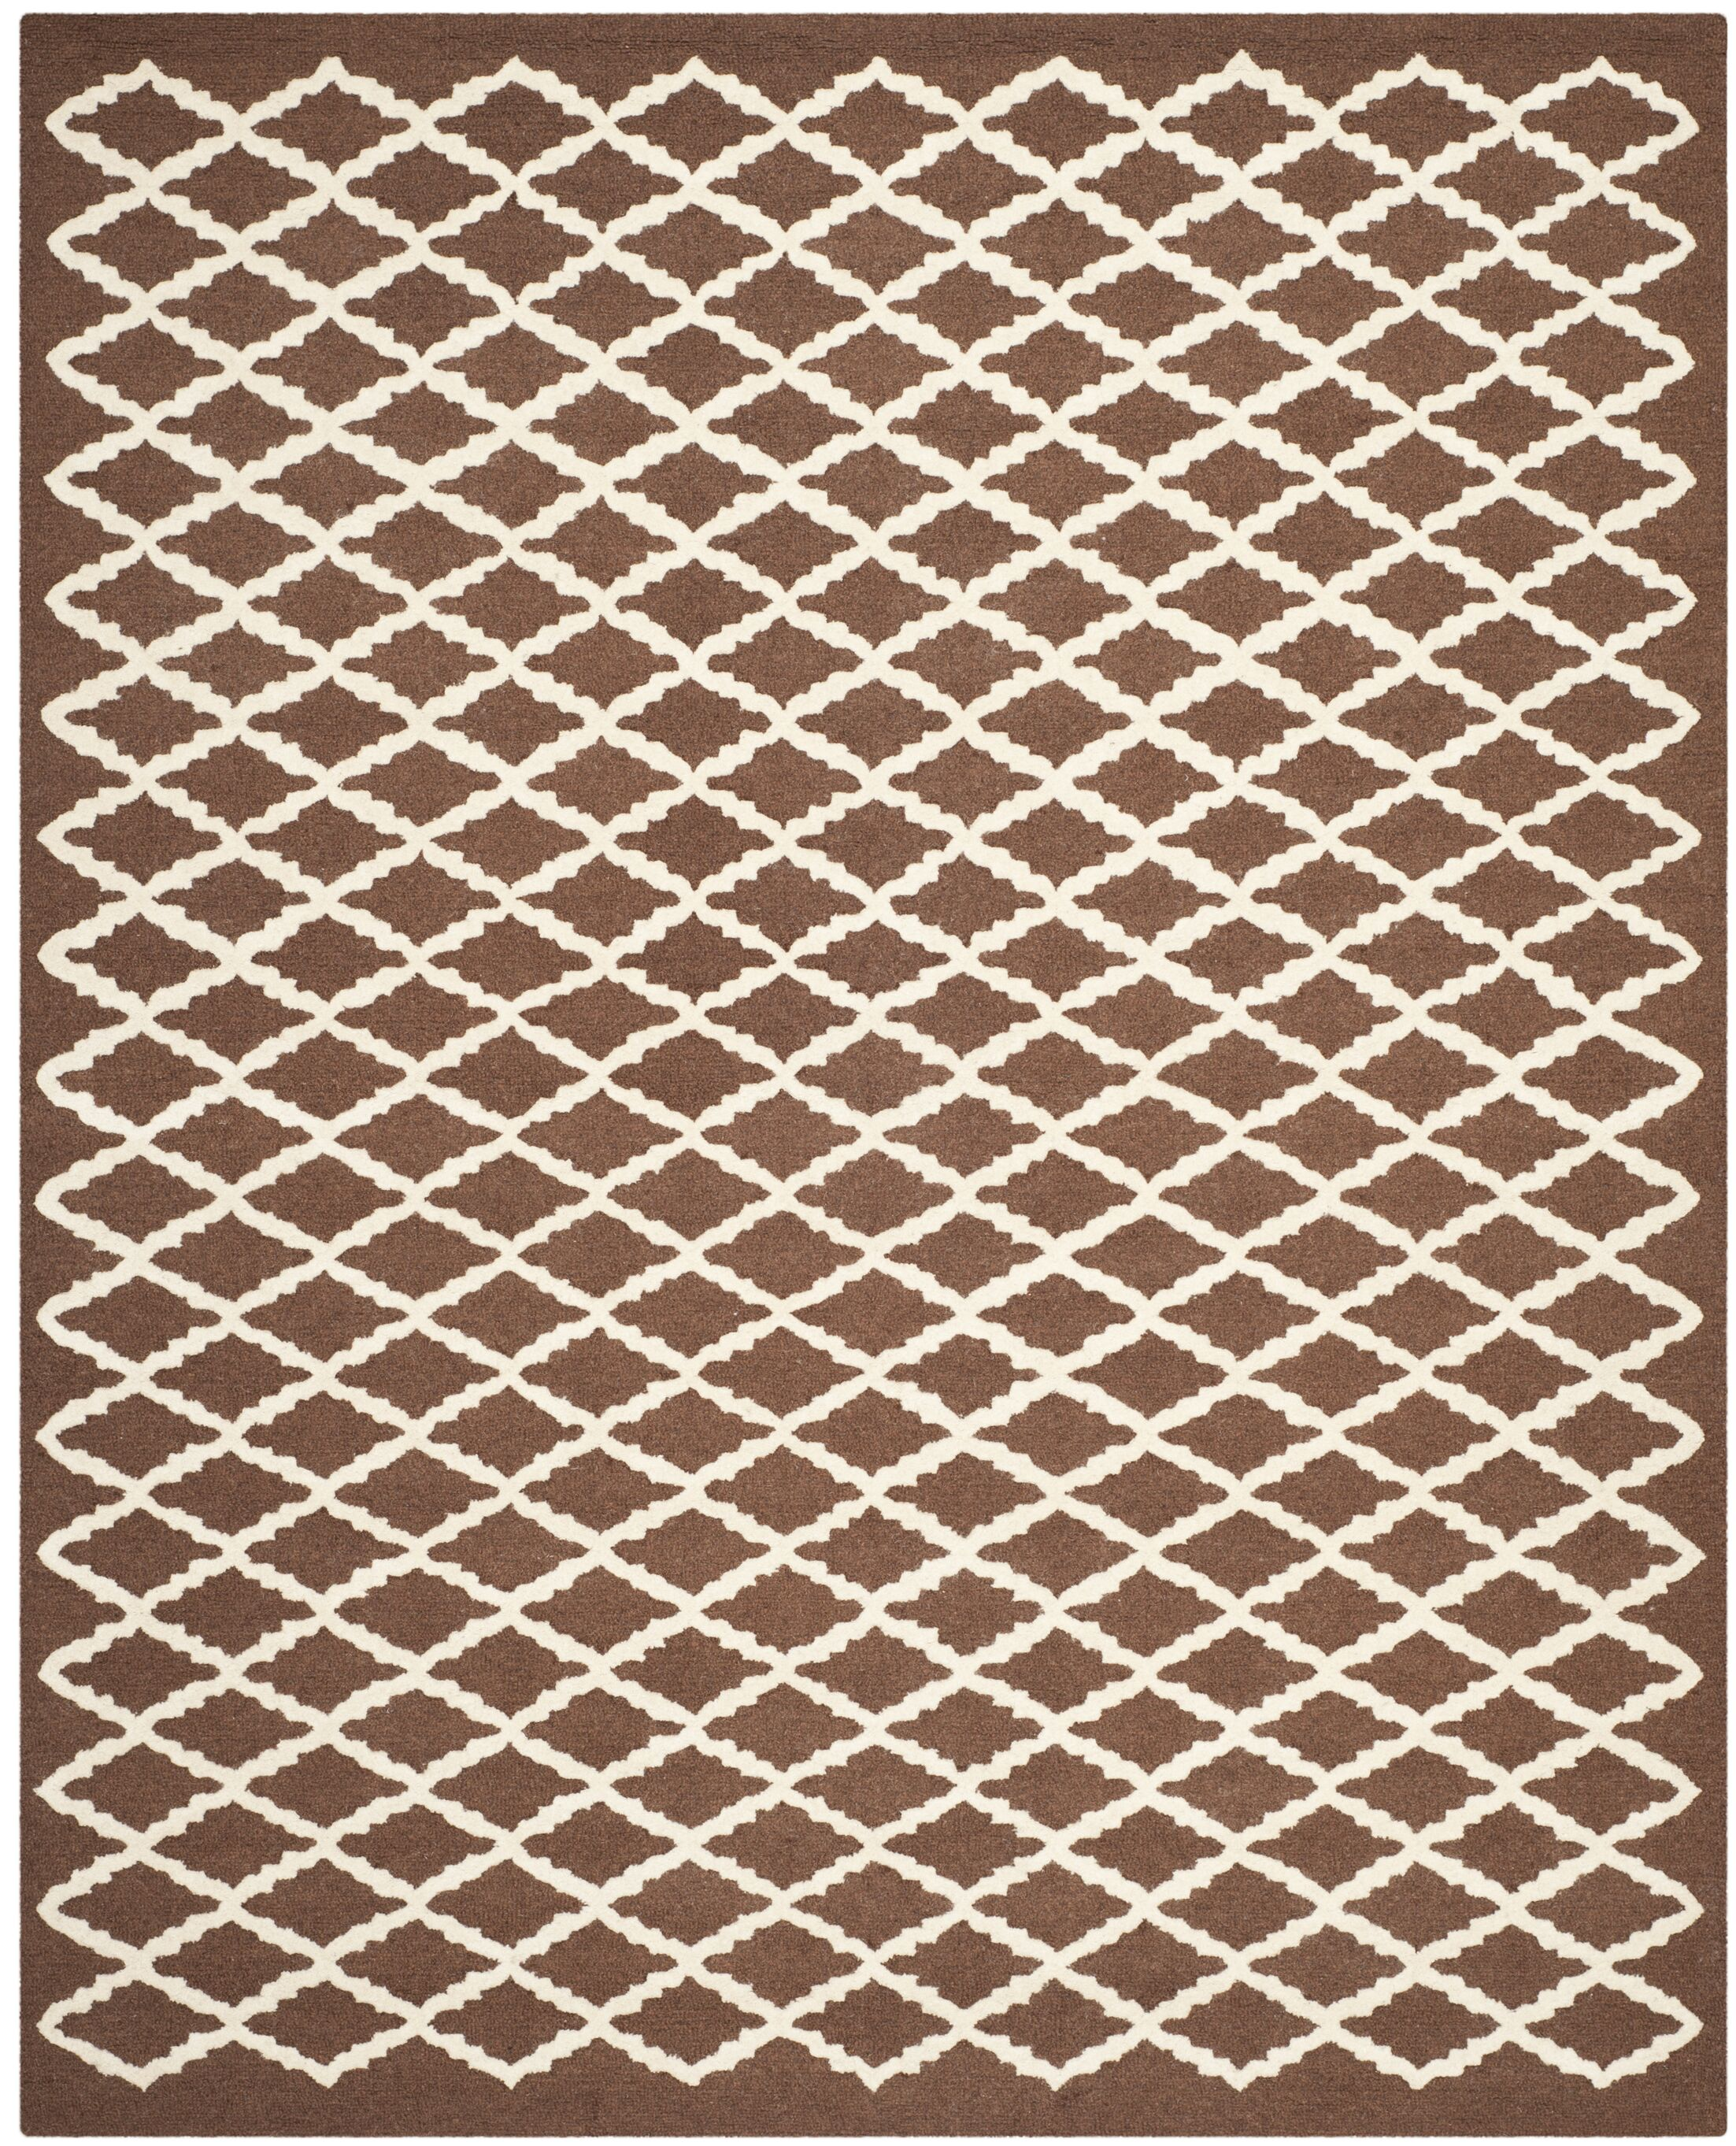 Darla Dark Brown Geometric Area Rug Rug Size: Rectangle 8' x 10'